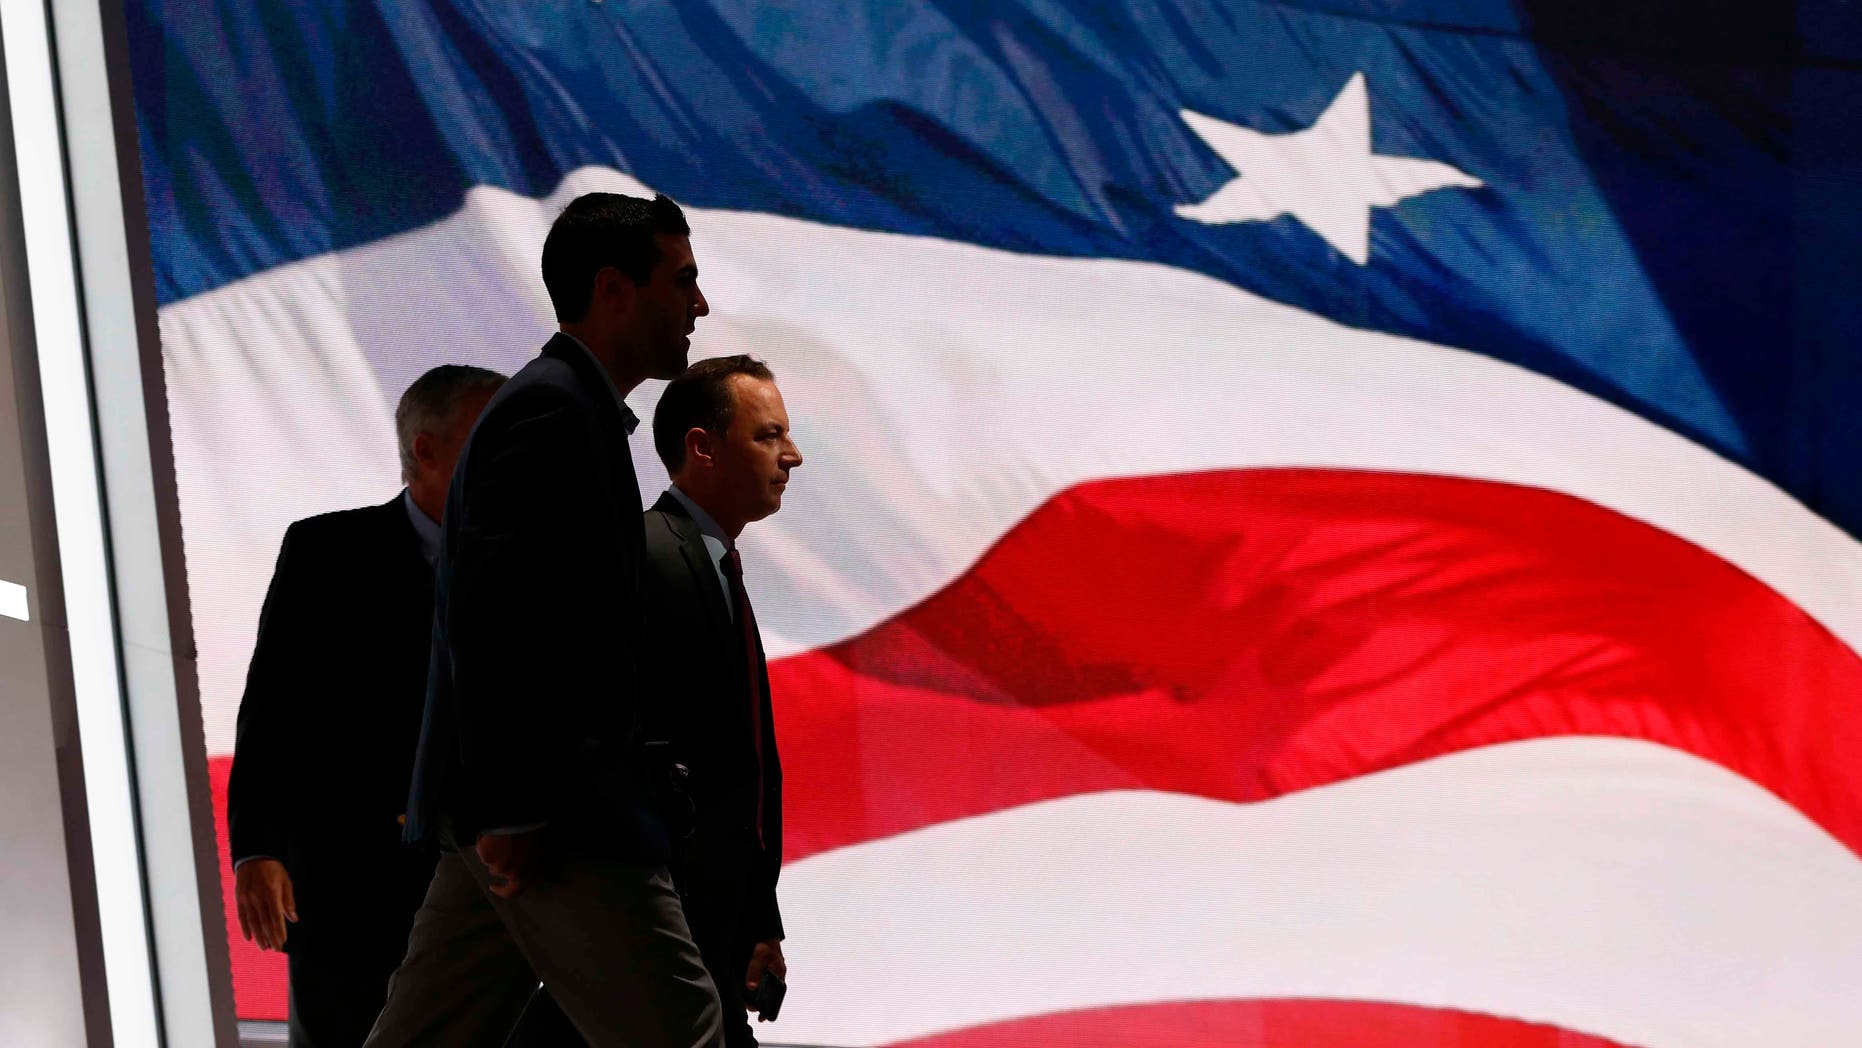 Chairman of the RNC Reince Priebus, inside Quicken Loans Arena, Sunday, July 17, 2016, in Cleveland.